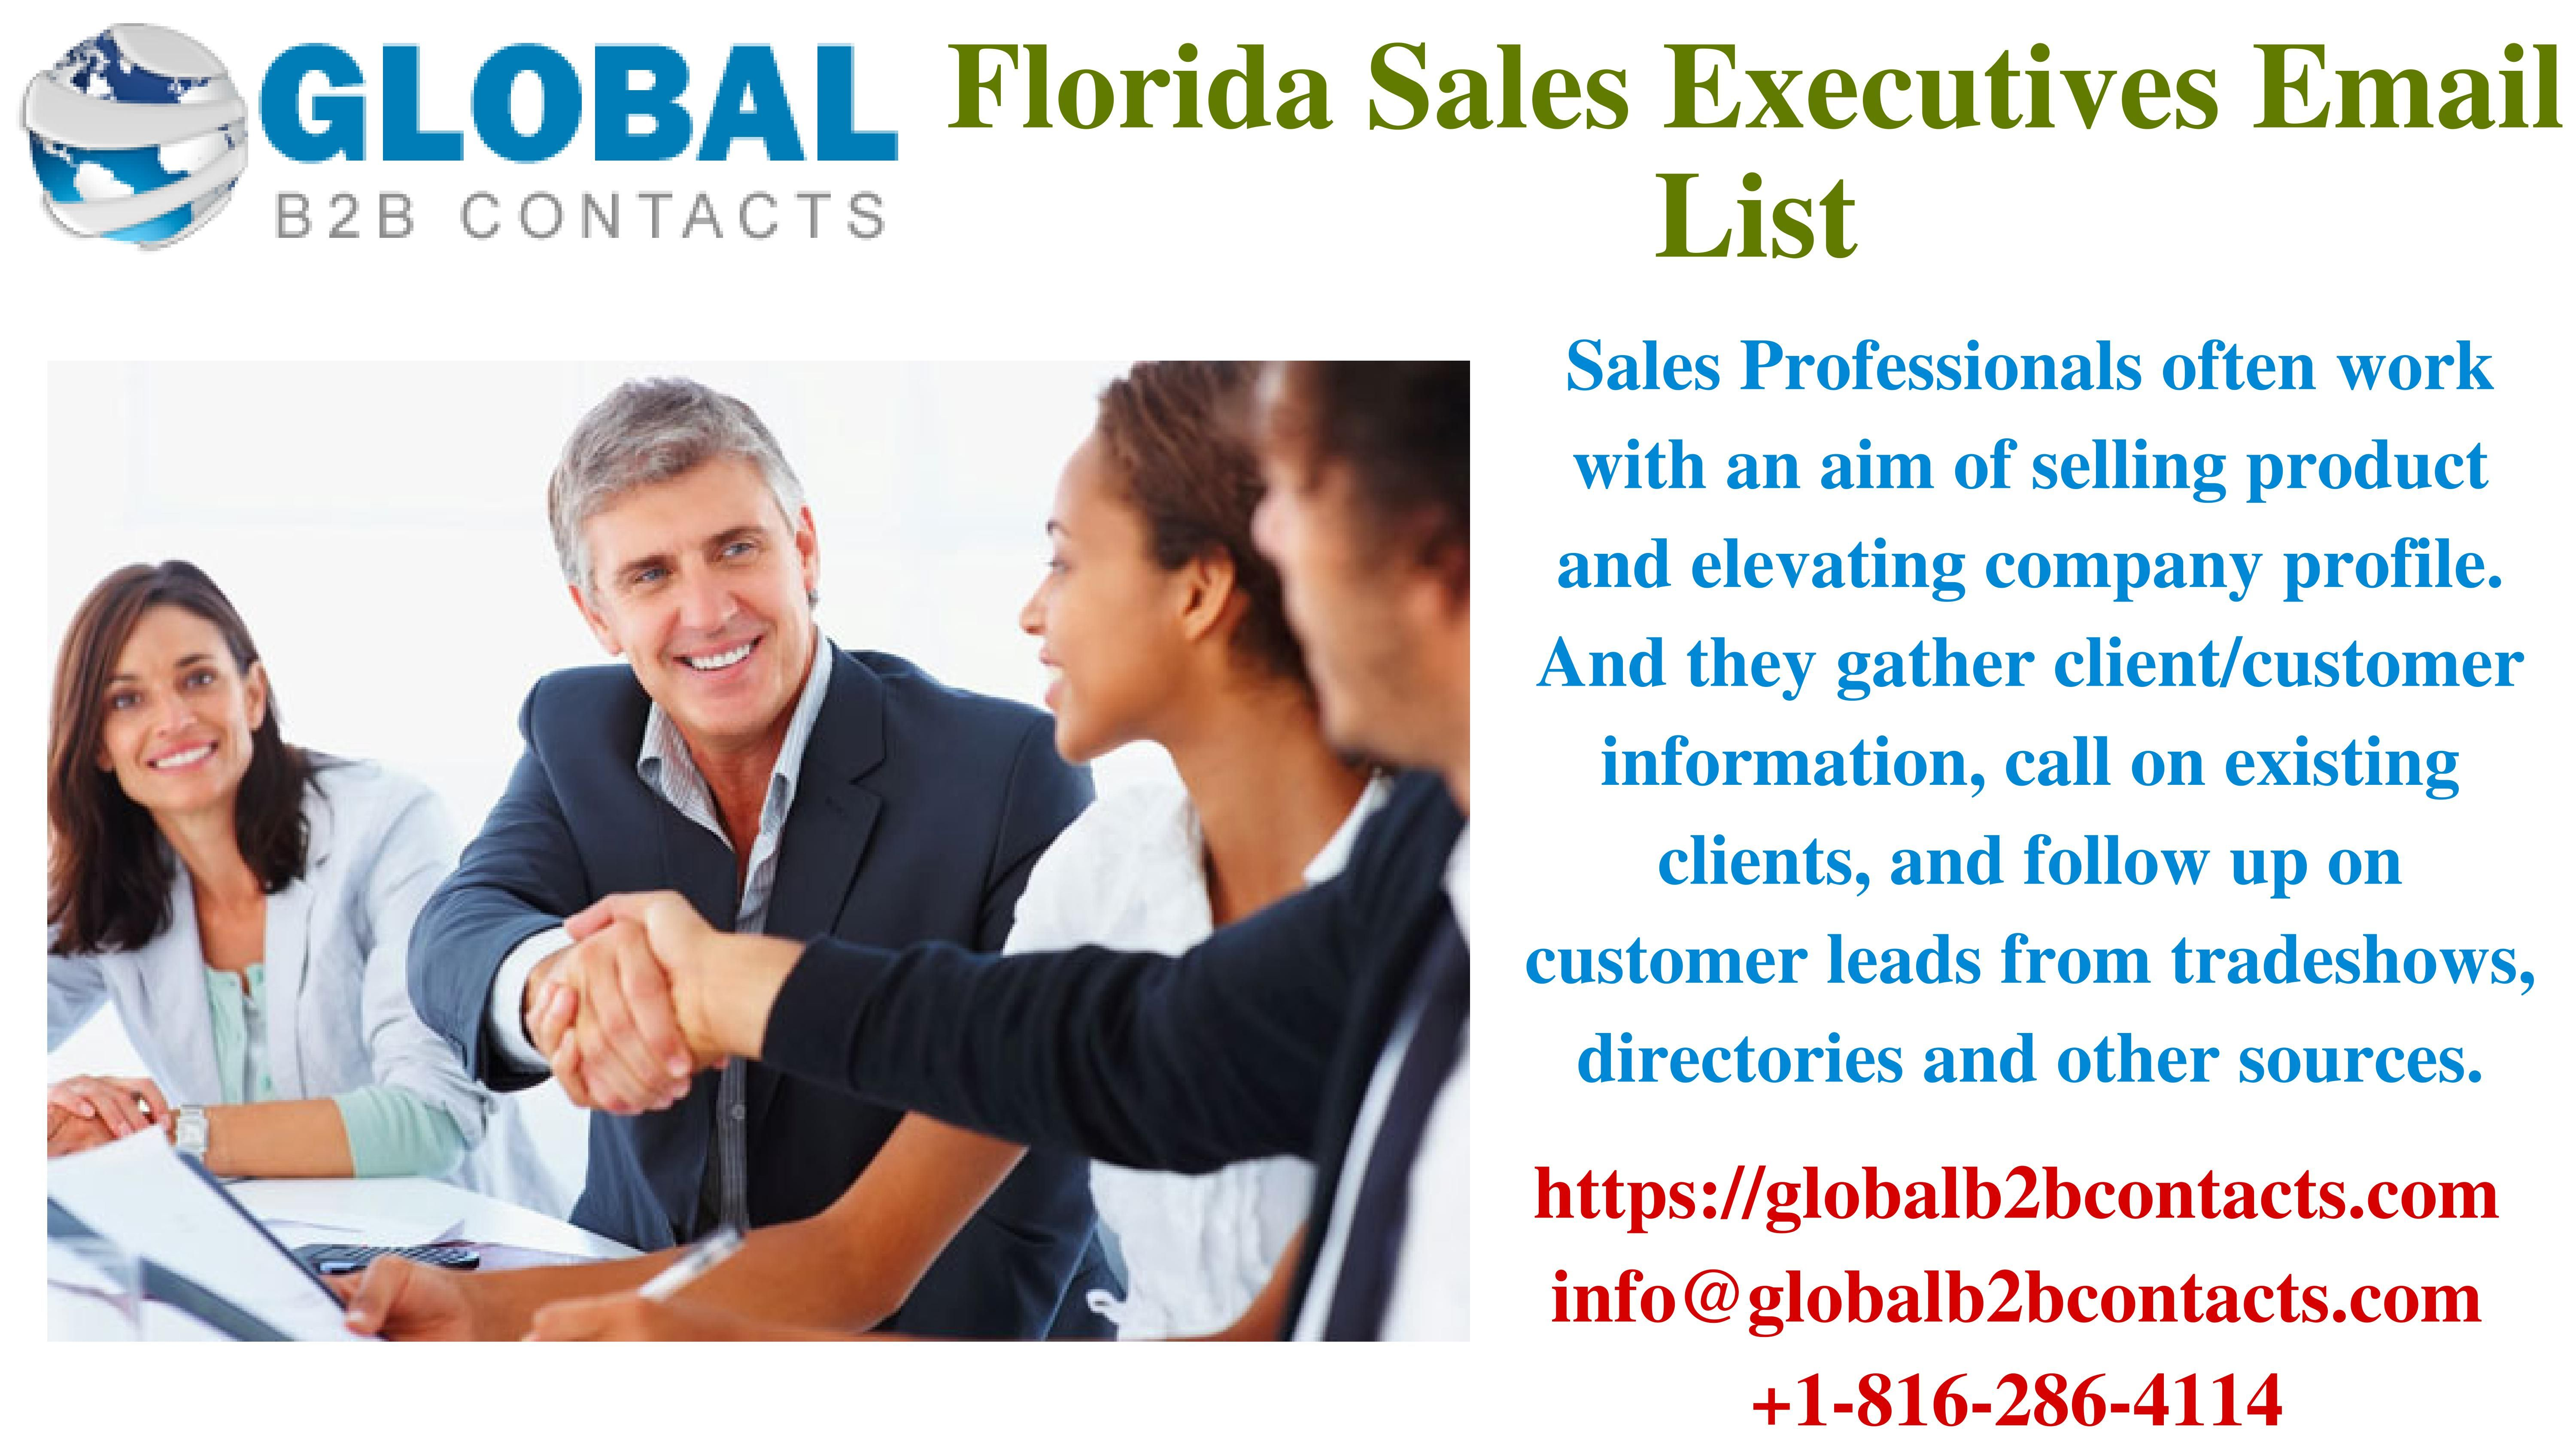 Florida sales executives email list accounting services